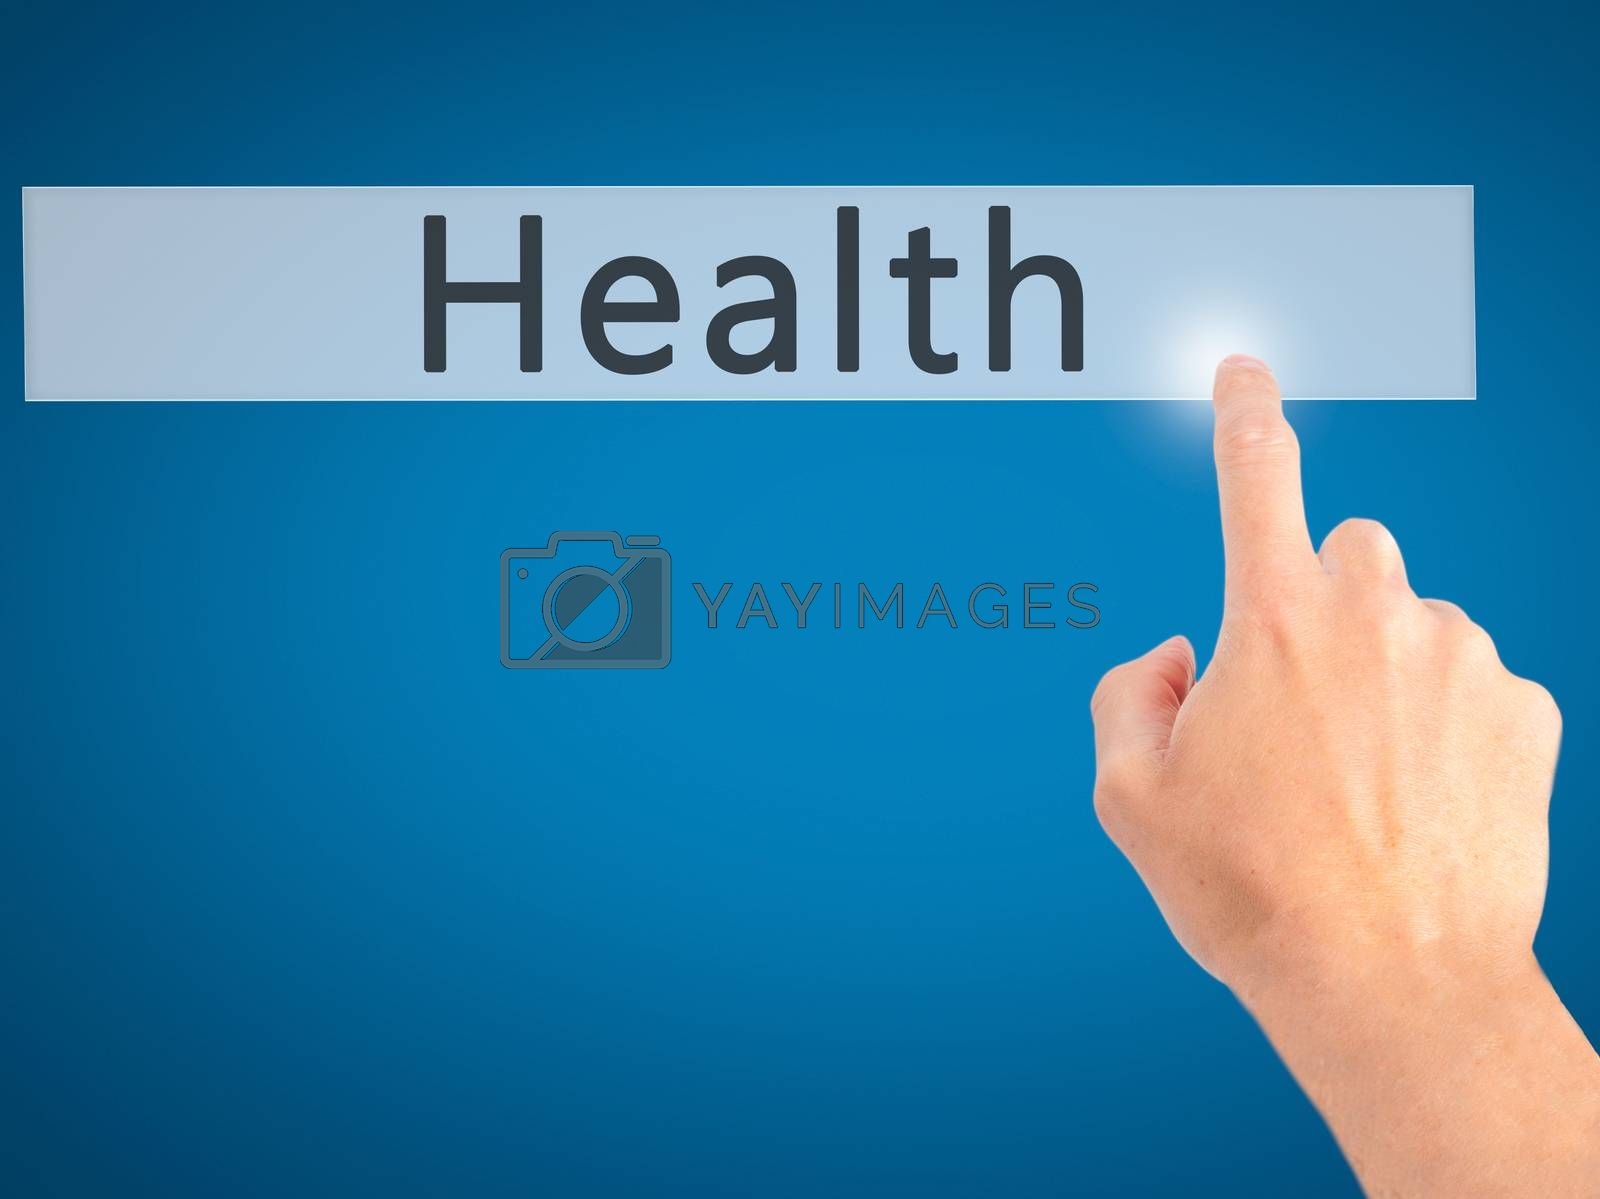 Health - Hand pressing a button on blurred background concept .  by jackald